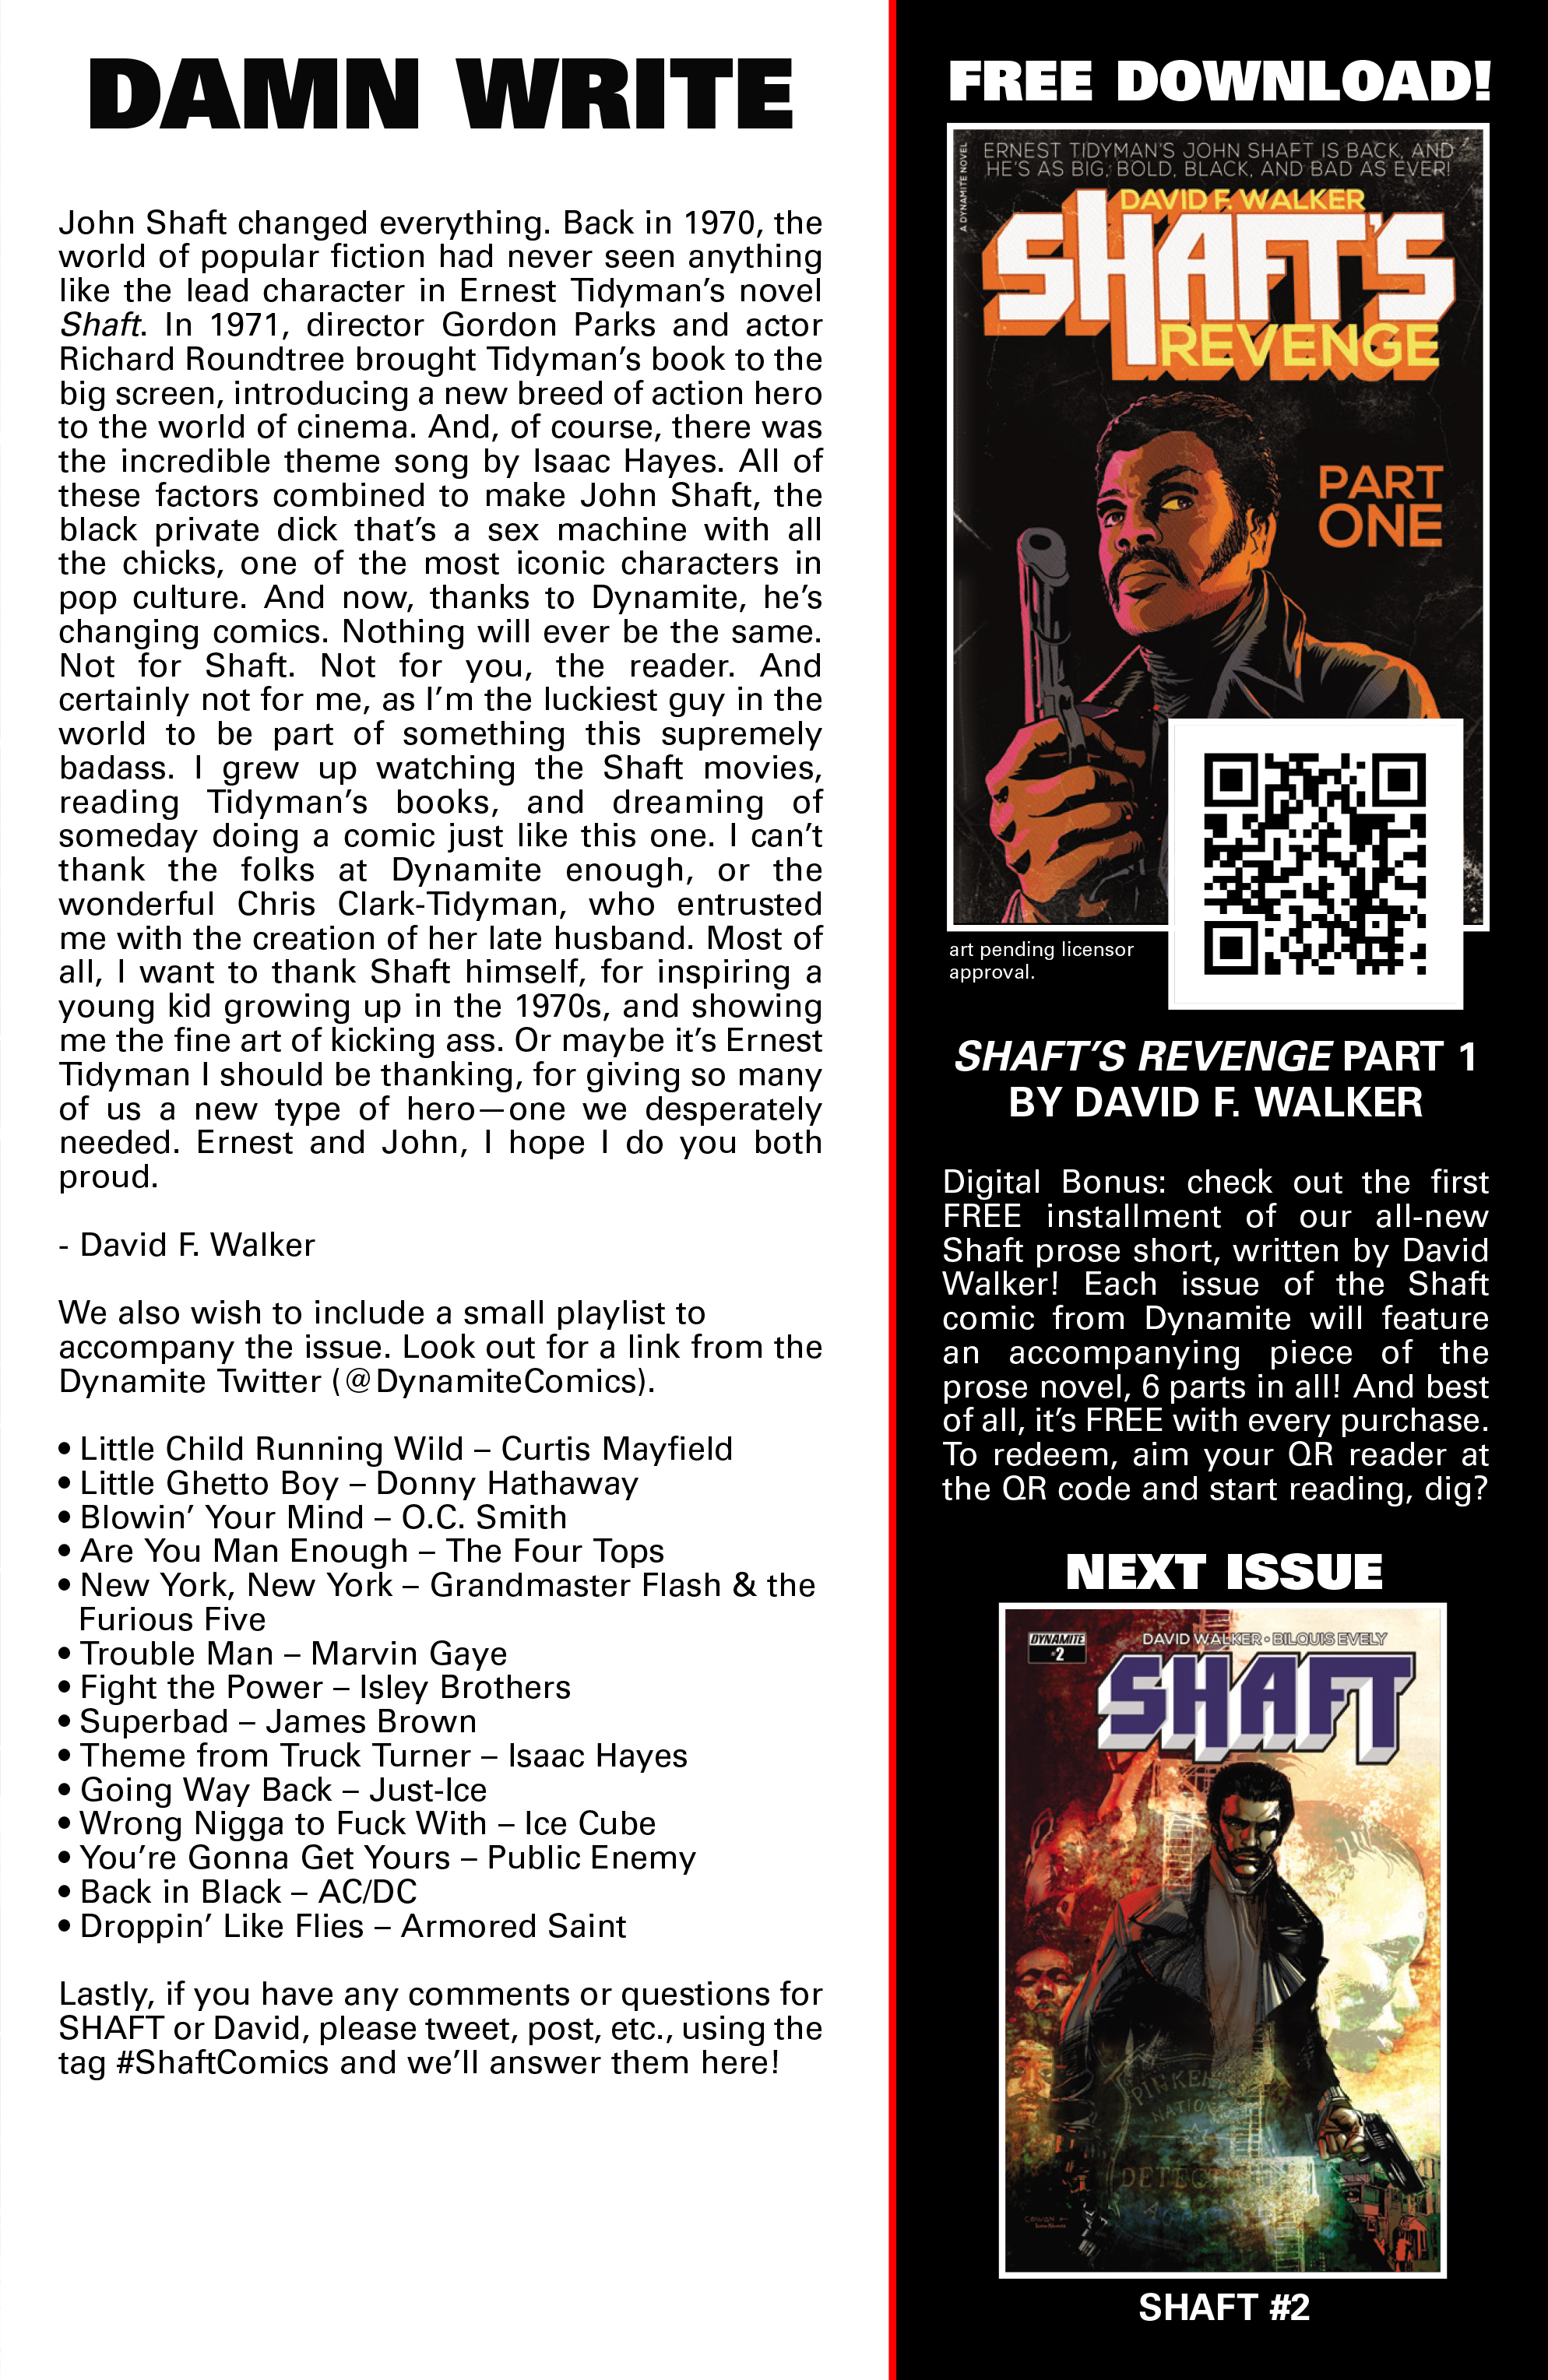 Read online Shaft comic -  Issue #1 - 29